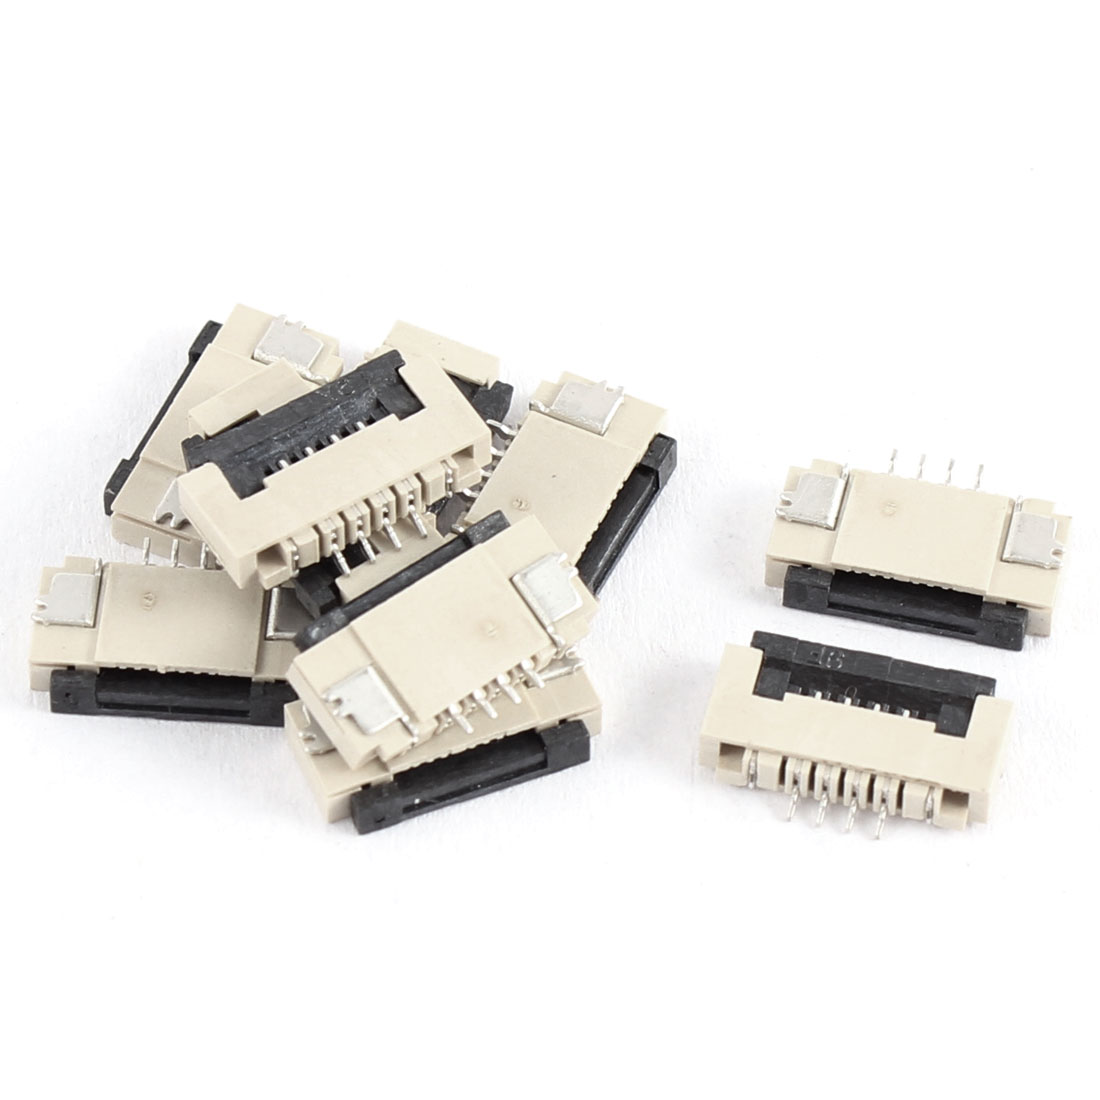 10Pcs Clamshell Type Bottom Port 4Pin 1.0mm Pitch FFC FPC Sockets Connector